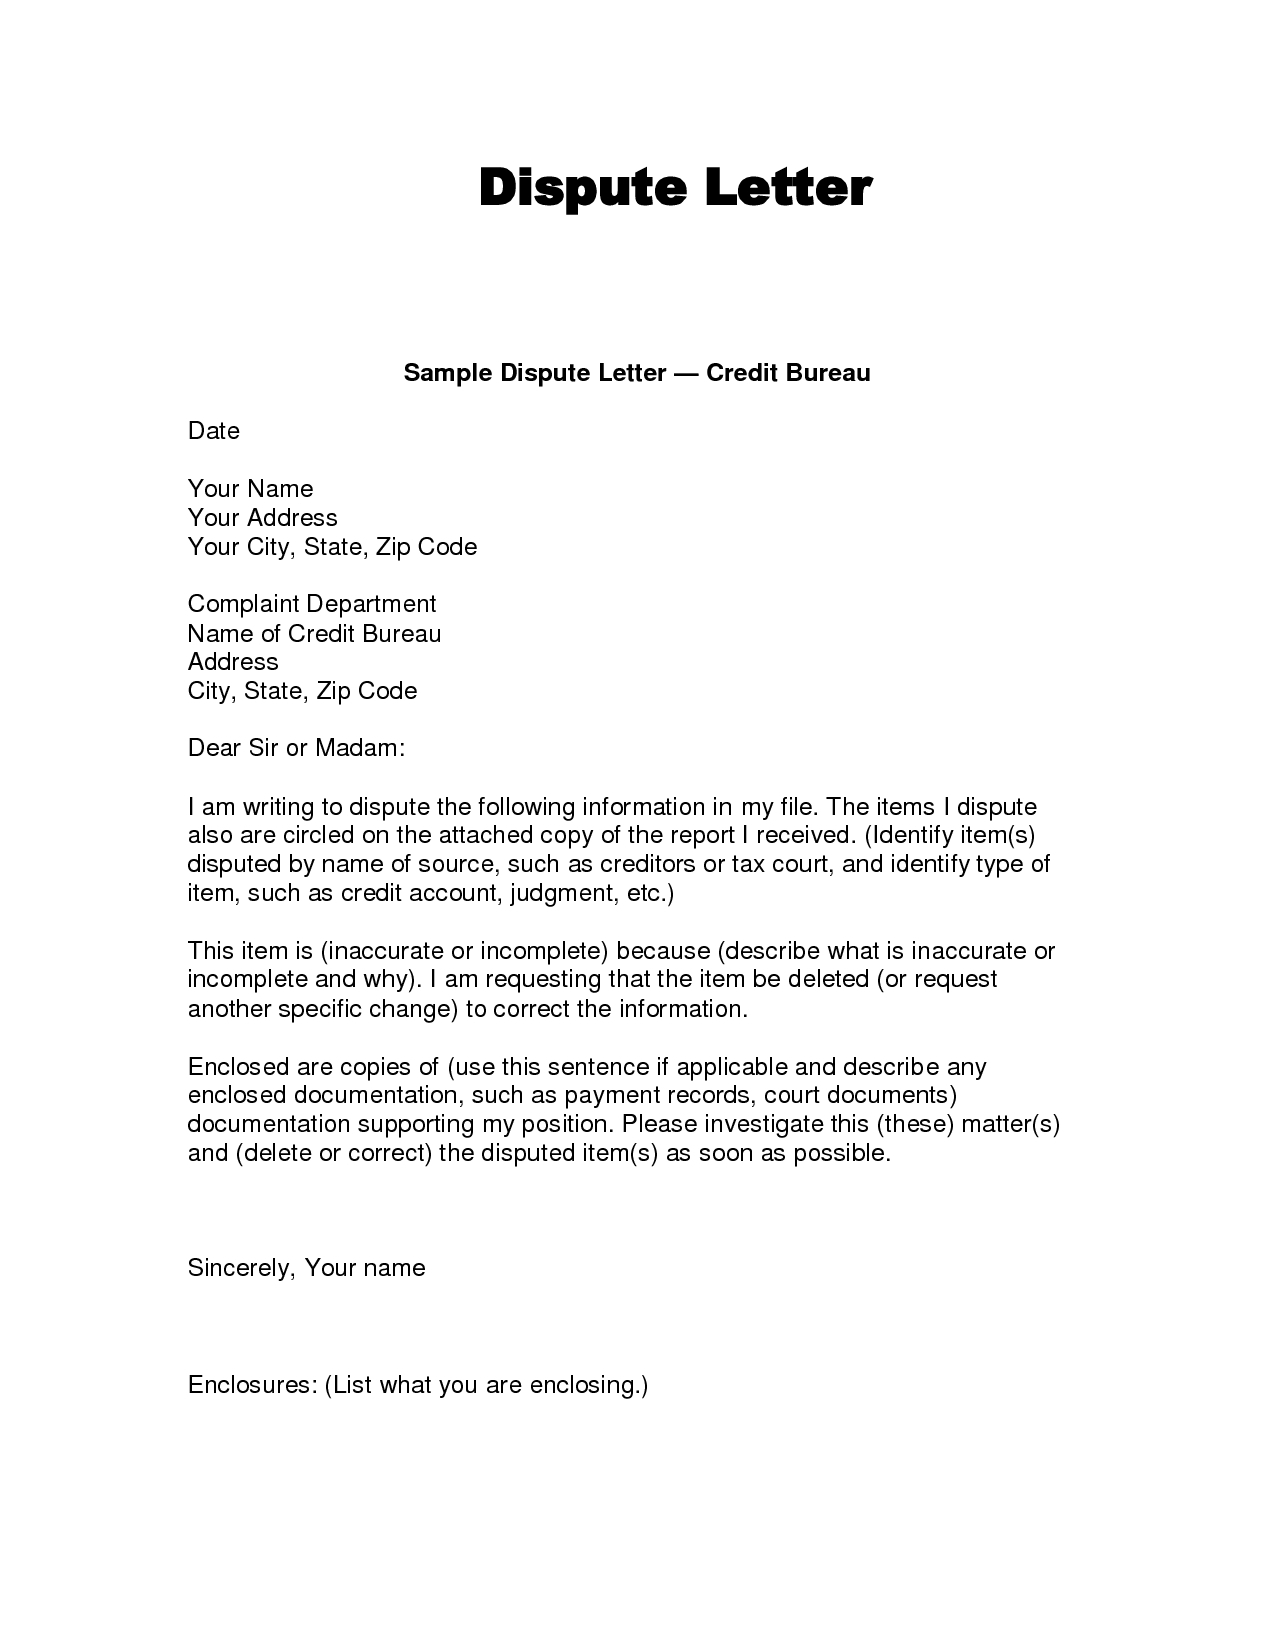 Letter of credit confirmation template examples letter templates letter of credit confirmation template credit dispute letter templates acurnamedia thecheapjerseys Choice Image